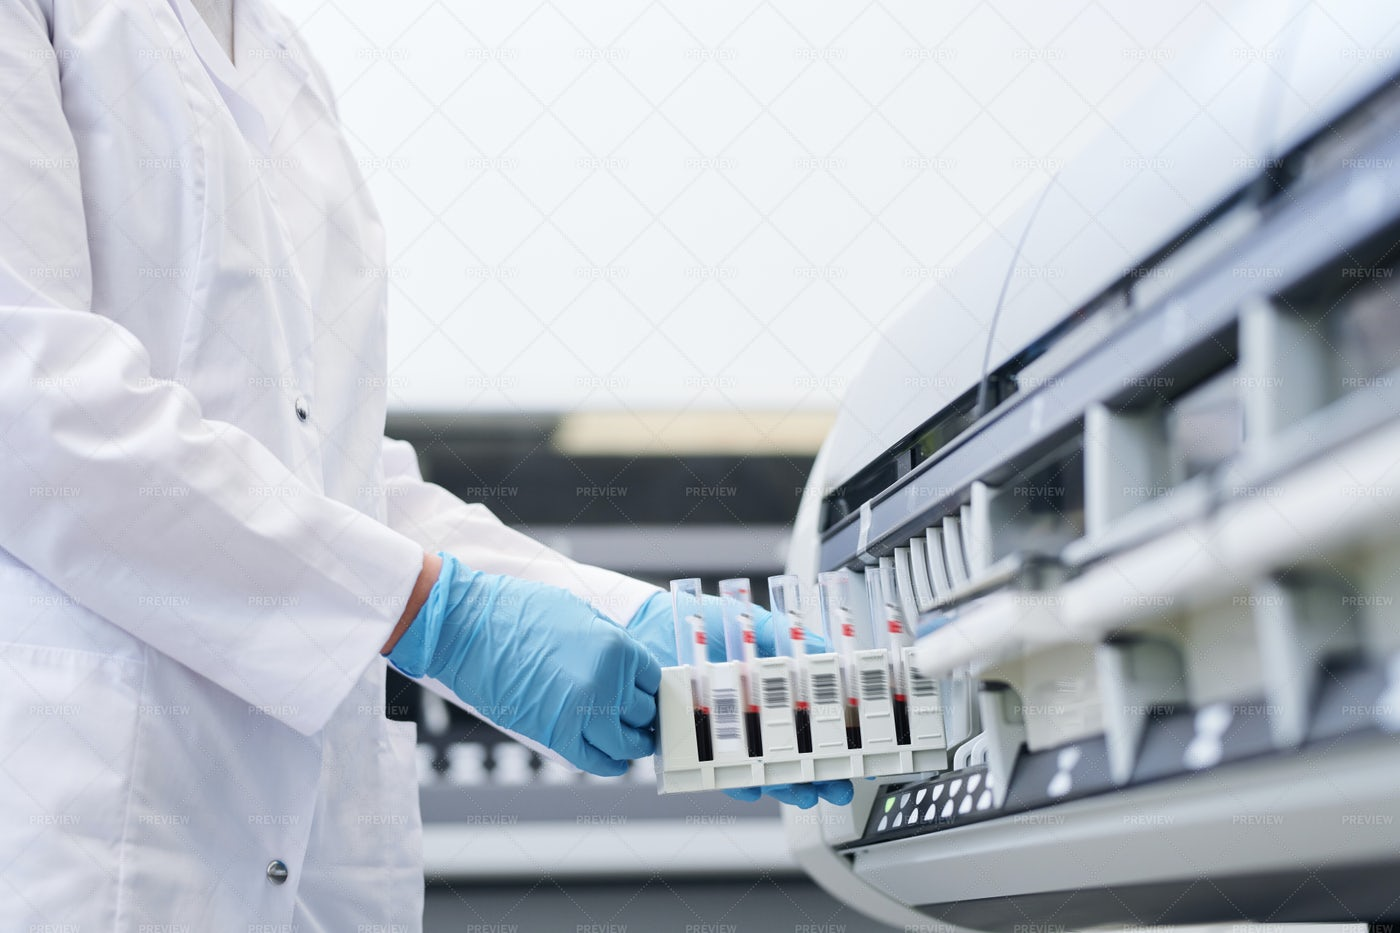 Putting Blood Samples Into Tube...: Stock Photos